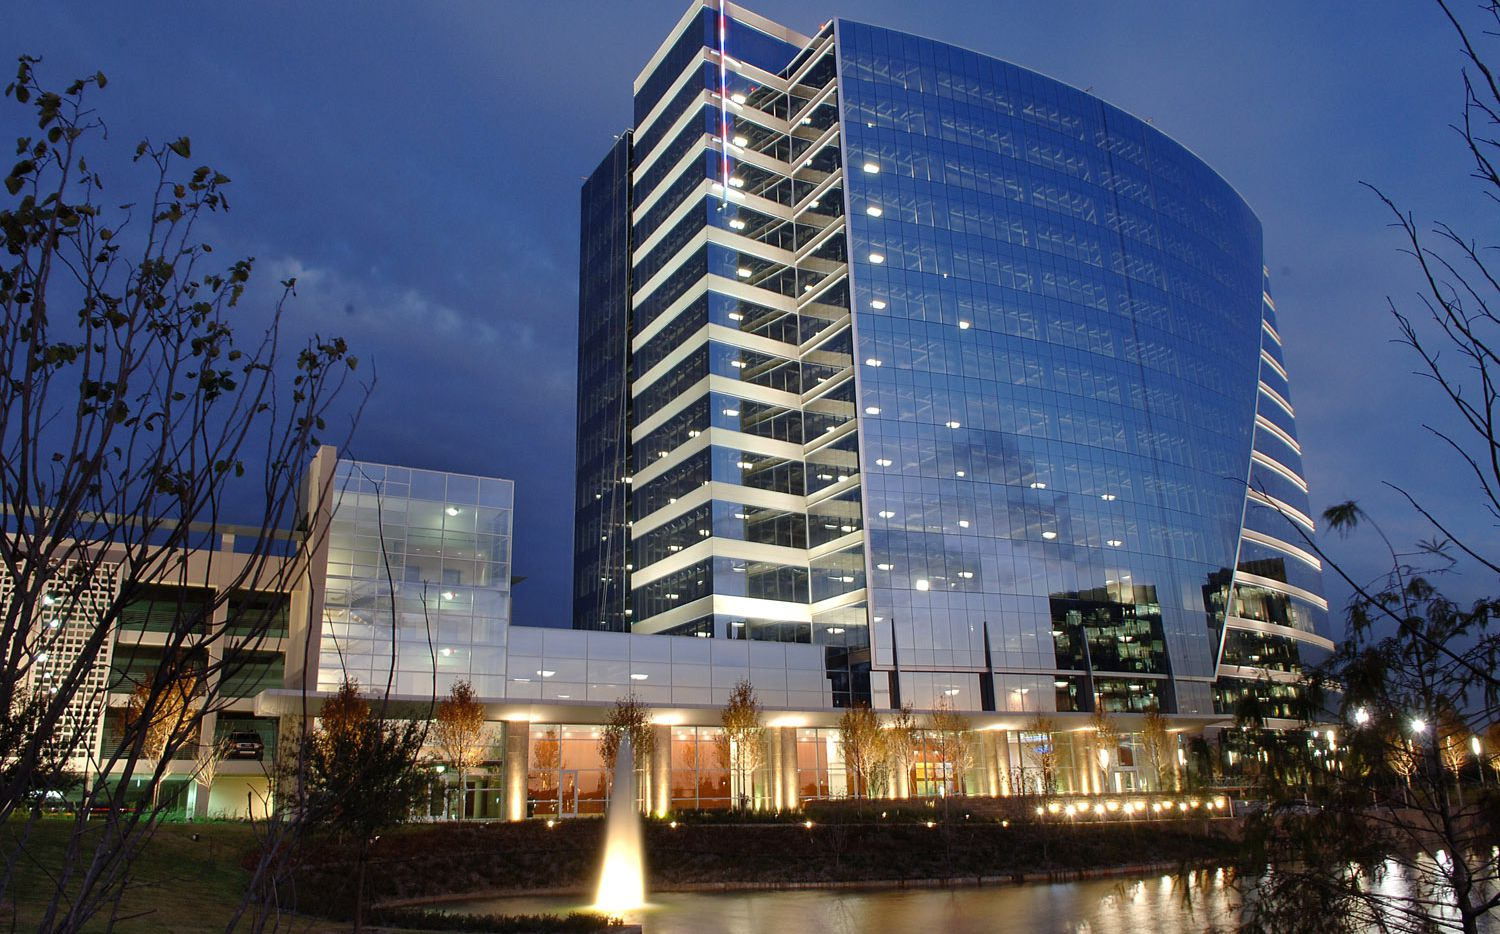 Alkami Technology is headquartered in the Granite Park development on Dallas North Tollway in Plano.